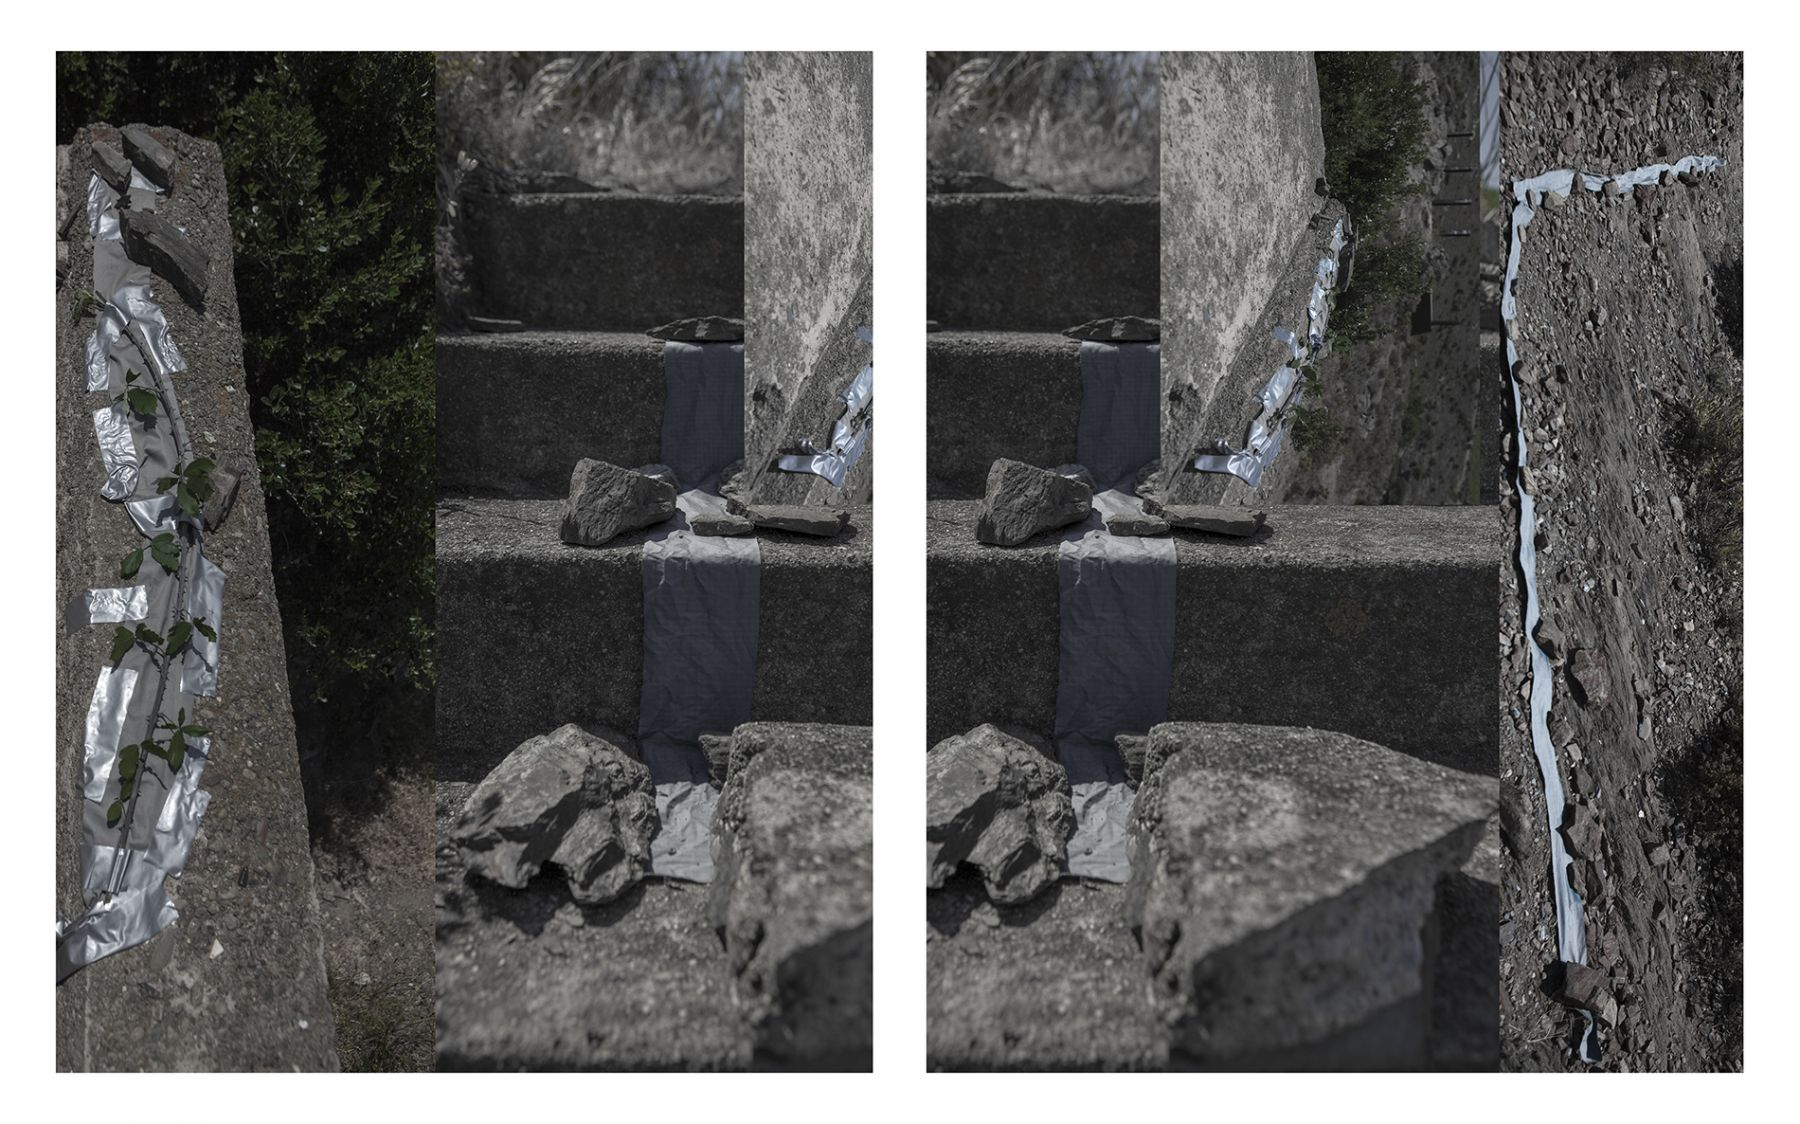 """Dawn Roe  Francoist Bunker, Spain/France Border (Concrete, Cloth, Boulders, Tape), from the series """"Conditions for and Unfinished Work of Mourning: Beauty As a Appeal to Join the Majority of Those who Are Dead"""", 2017  Two Panel Archival Pigment Print  20 x 16 inches each, Photography, Ashevill, Contemporary Art"""